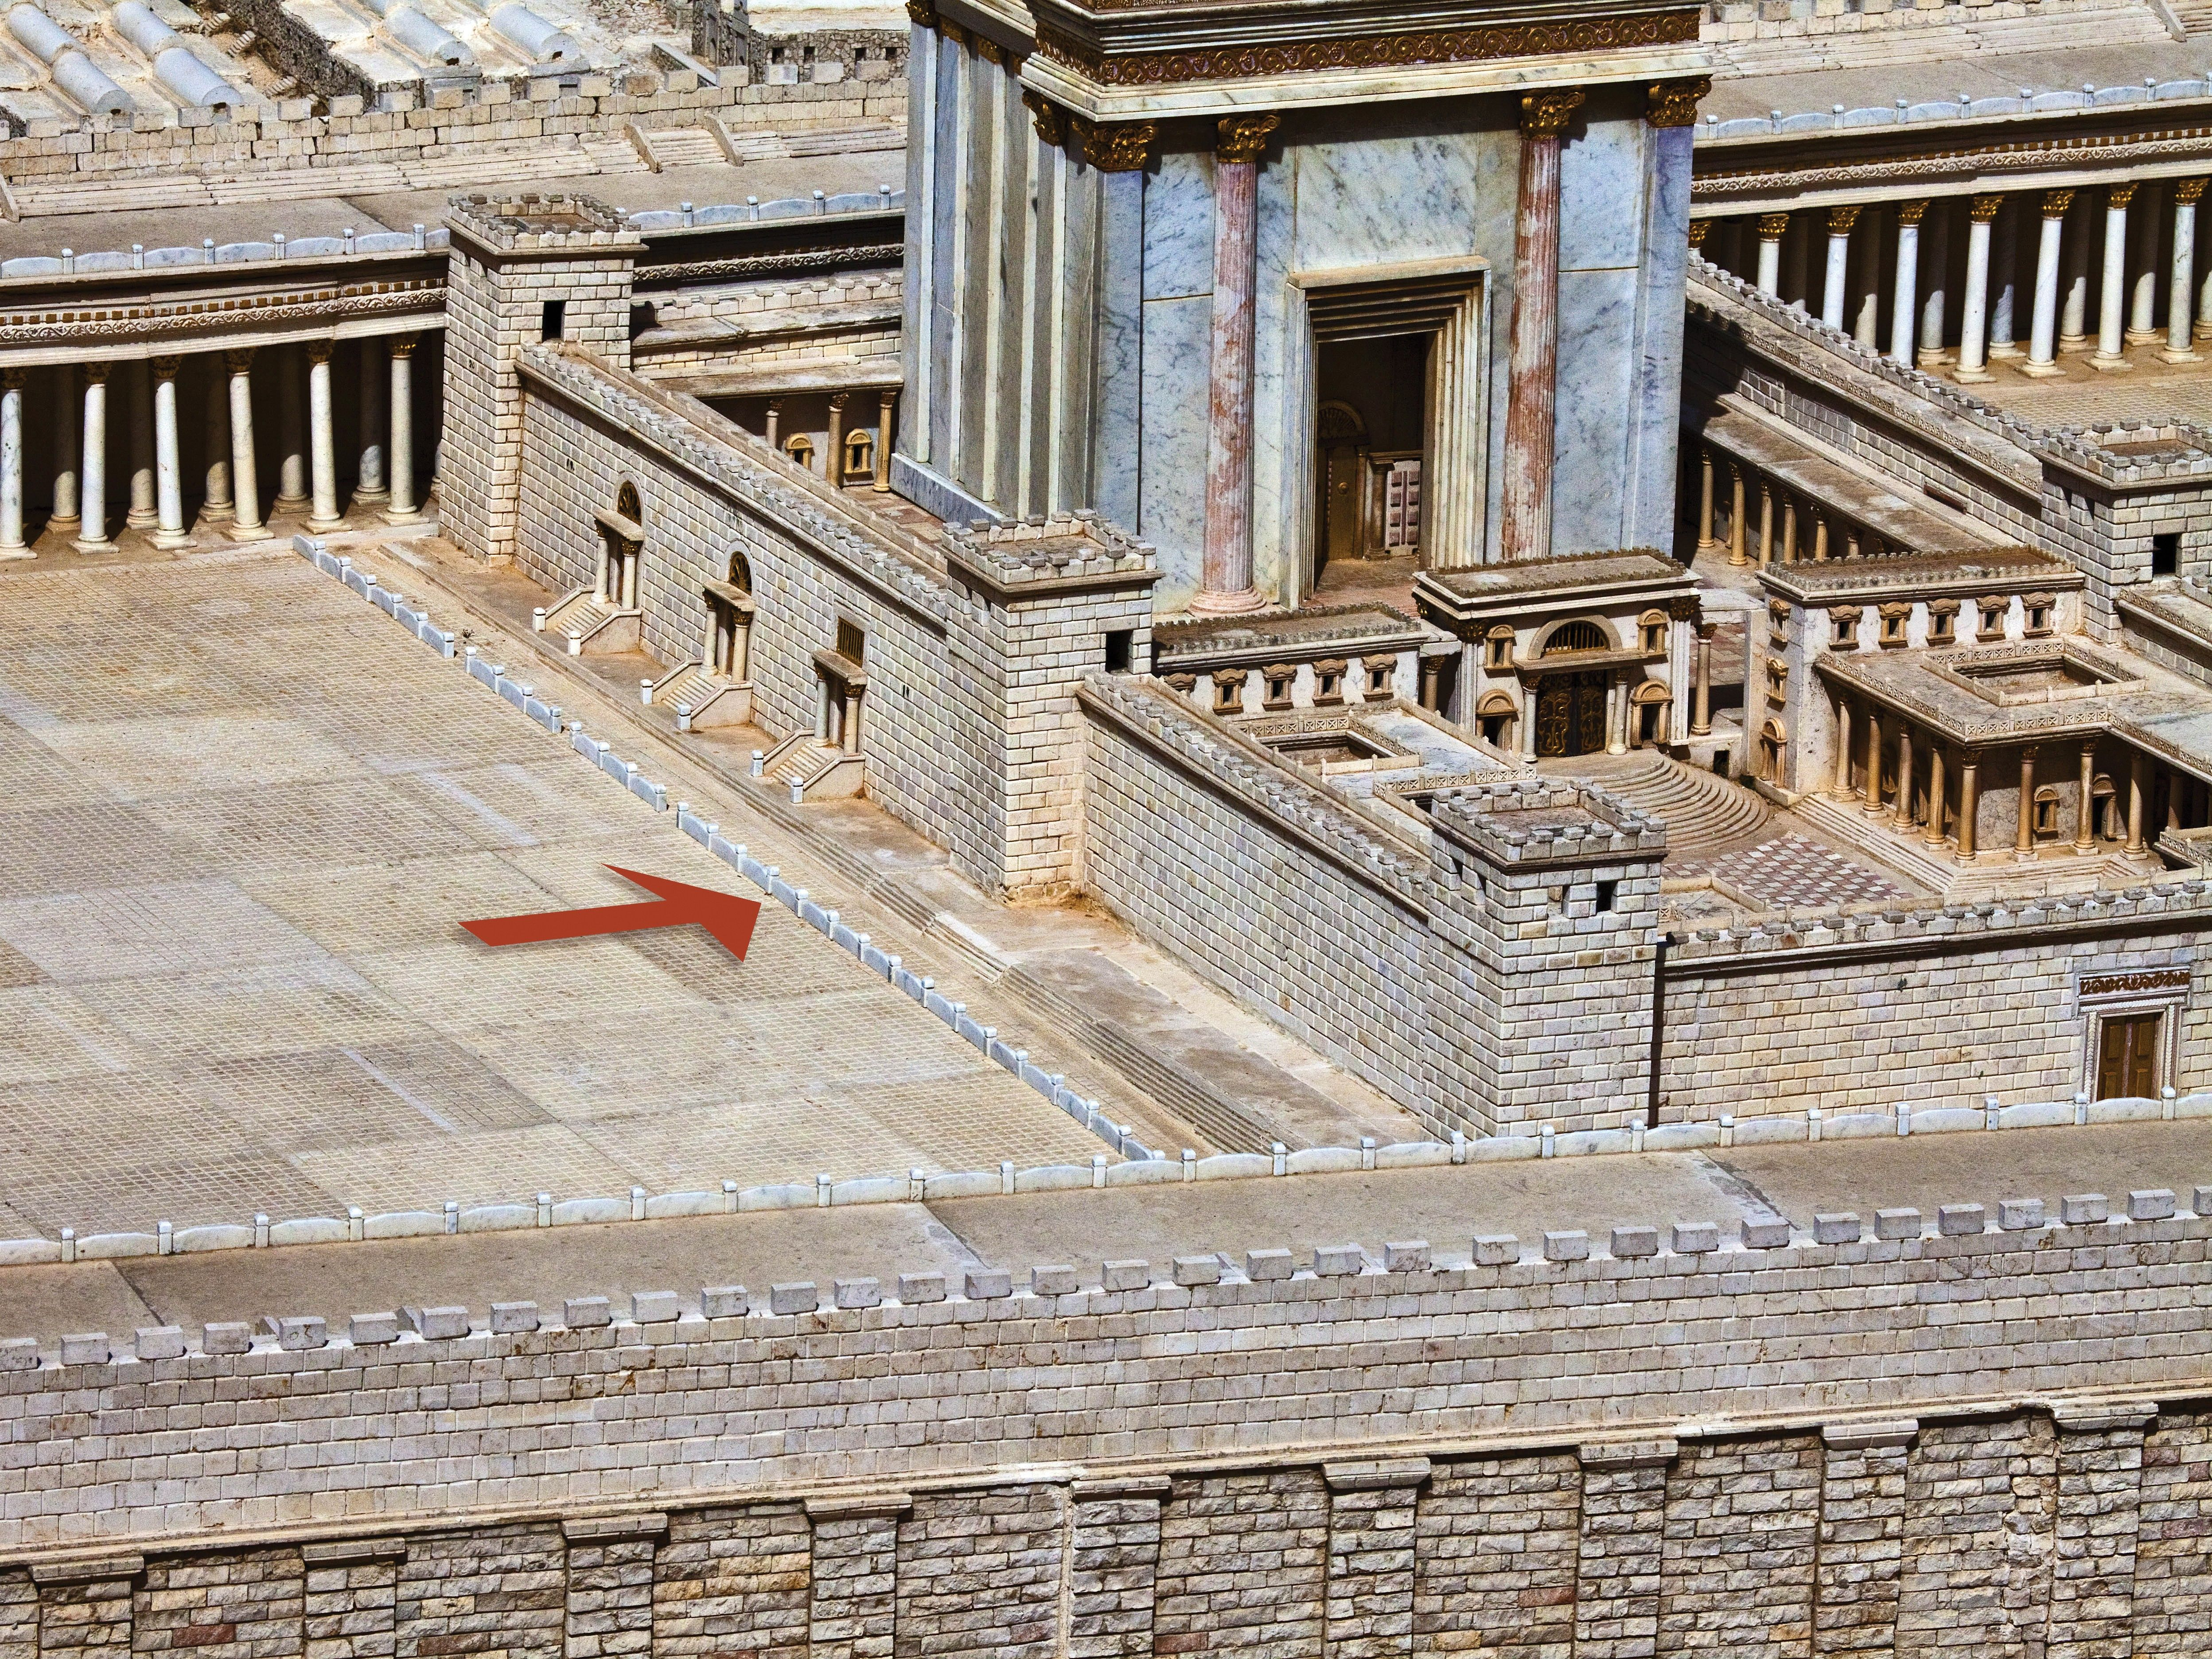 A model of first-century Jerusalem, with the wall of partition around the temple indicated by an arrow.